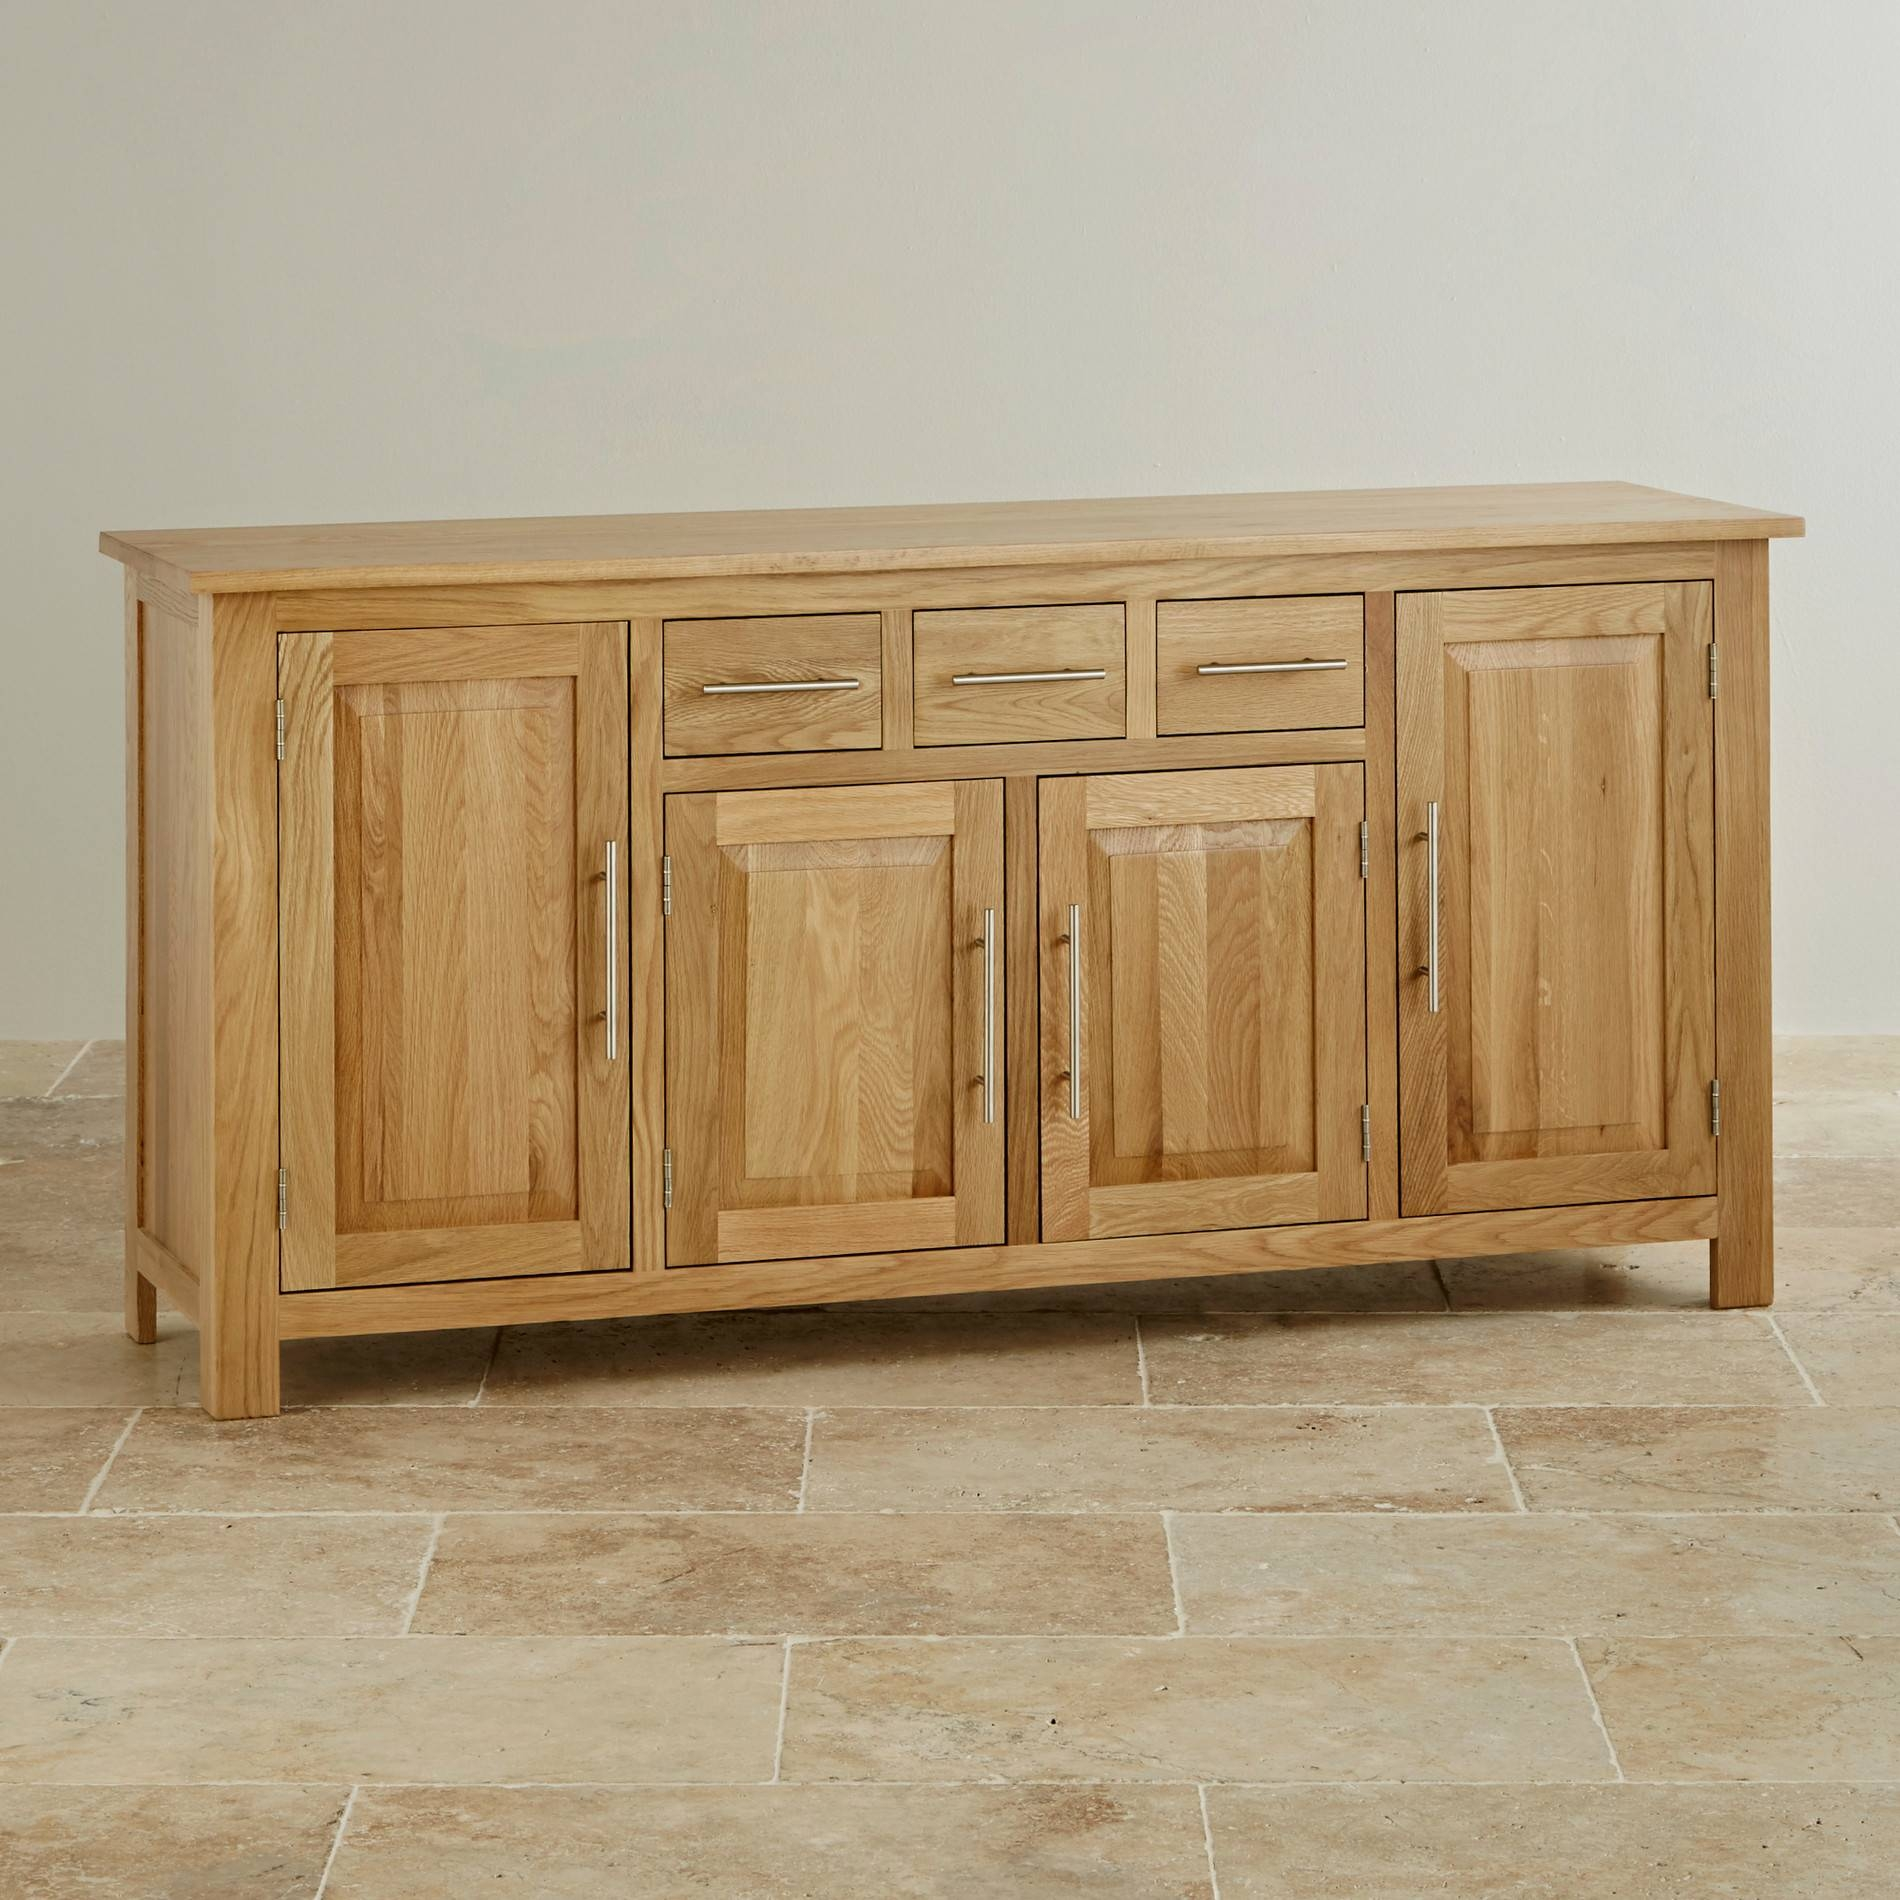 Rivermead Natural Solid Oak Large Sideboard | Oak Furniture Land in Solid Wood Sideboards (Image 13 of 15)